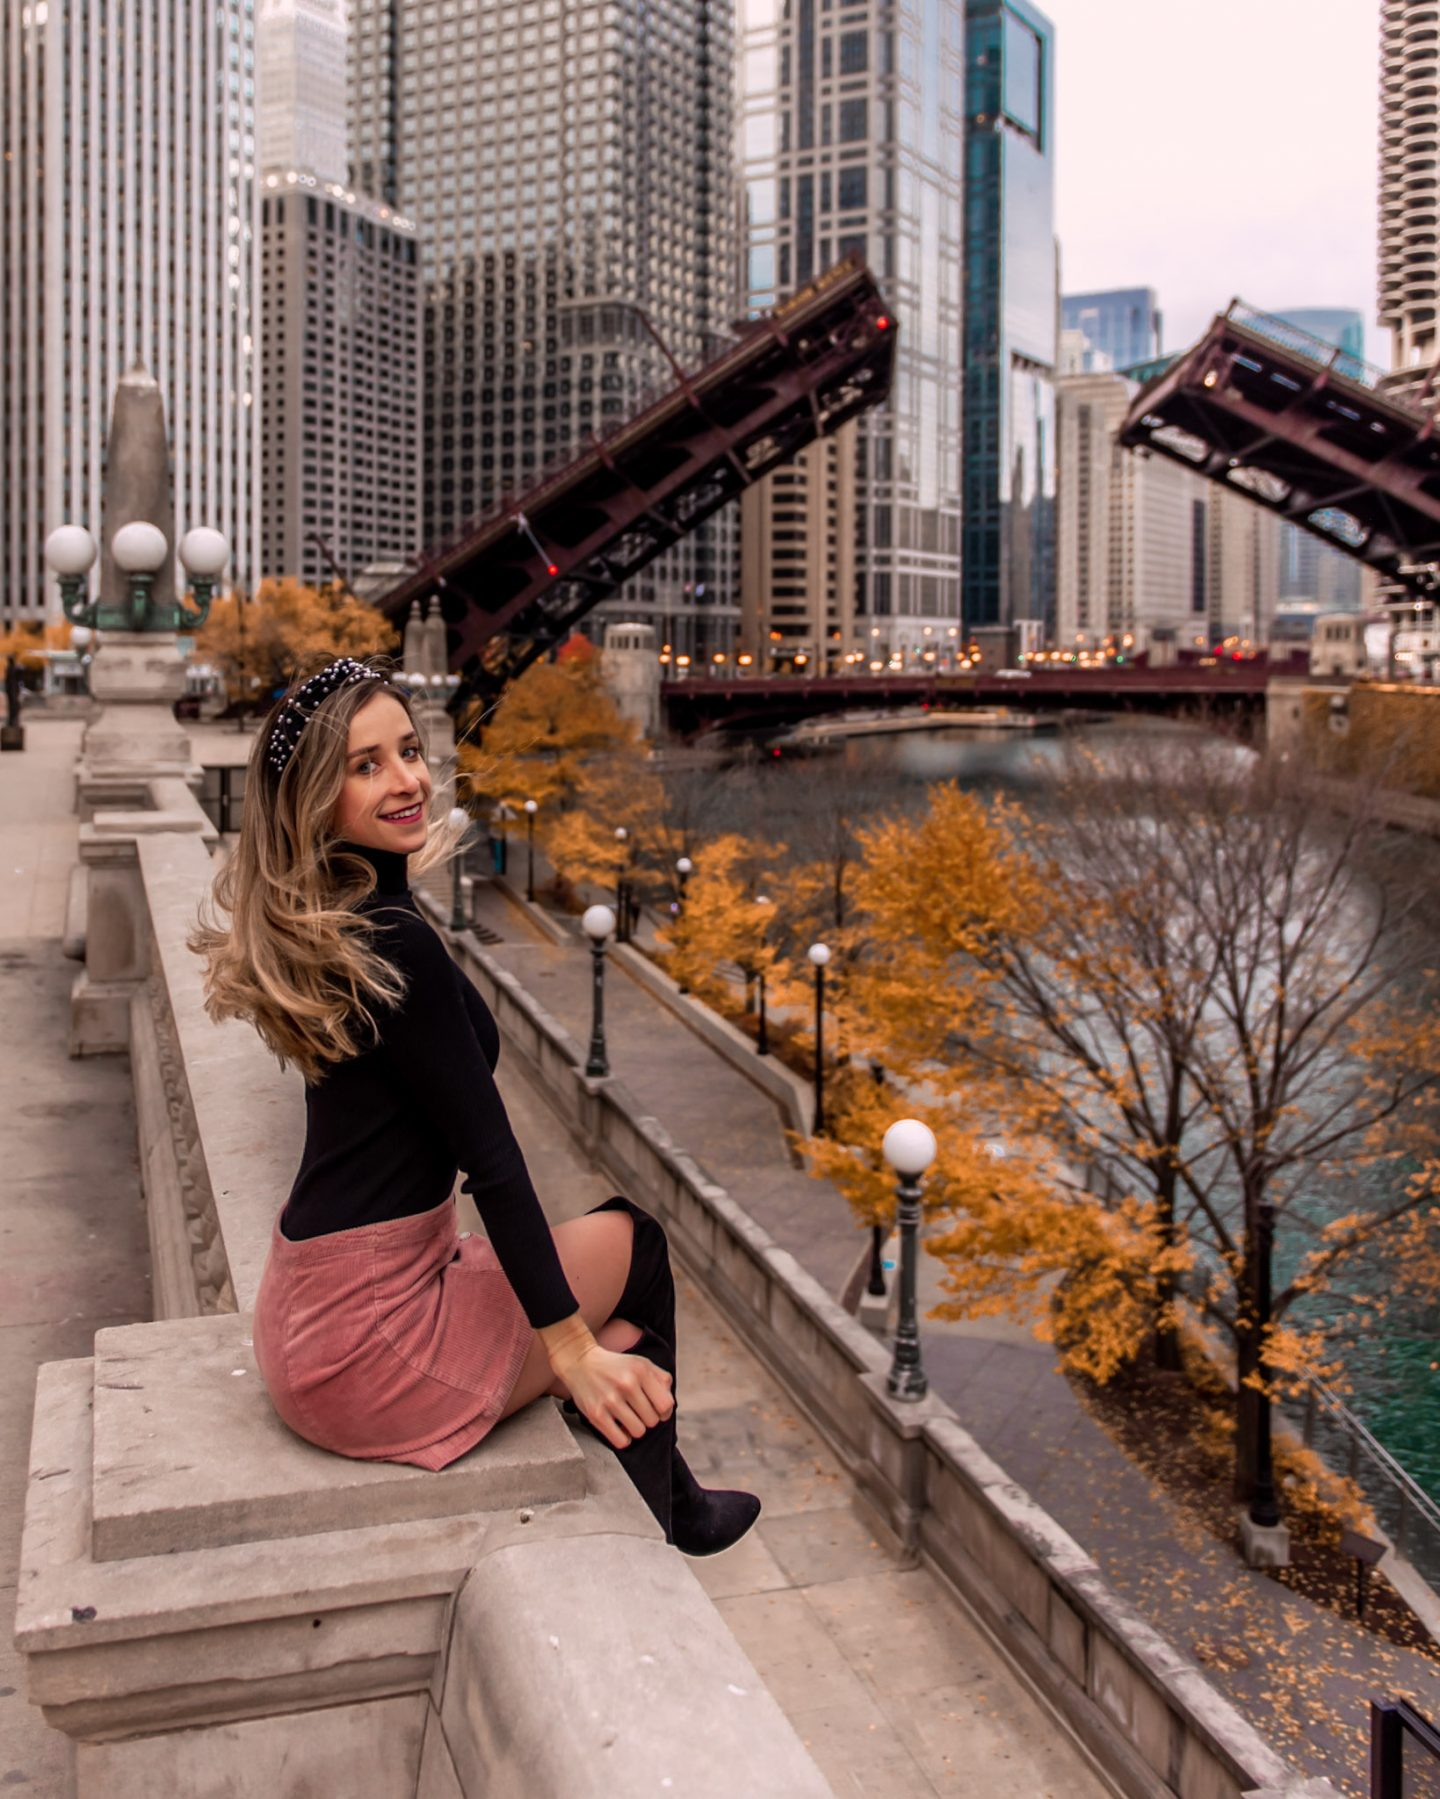 Chicago riverwalk in the fall